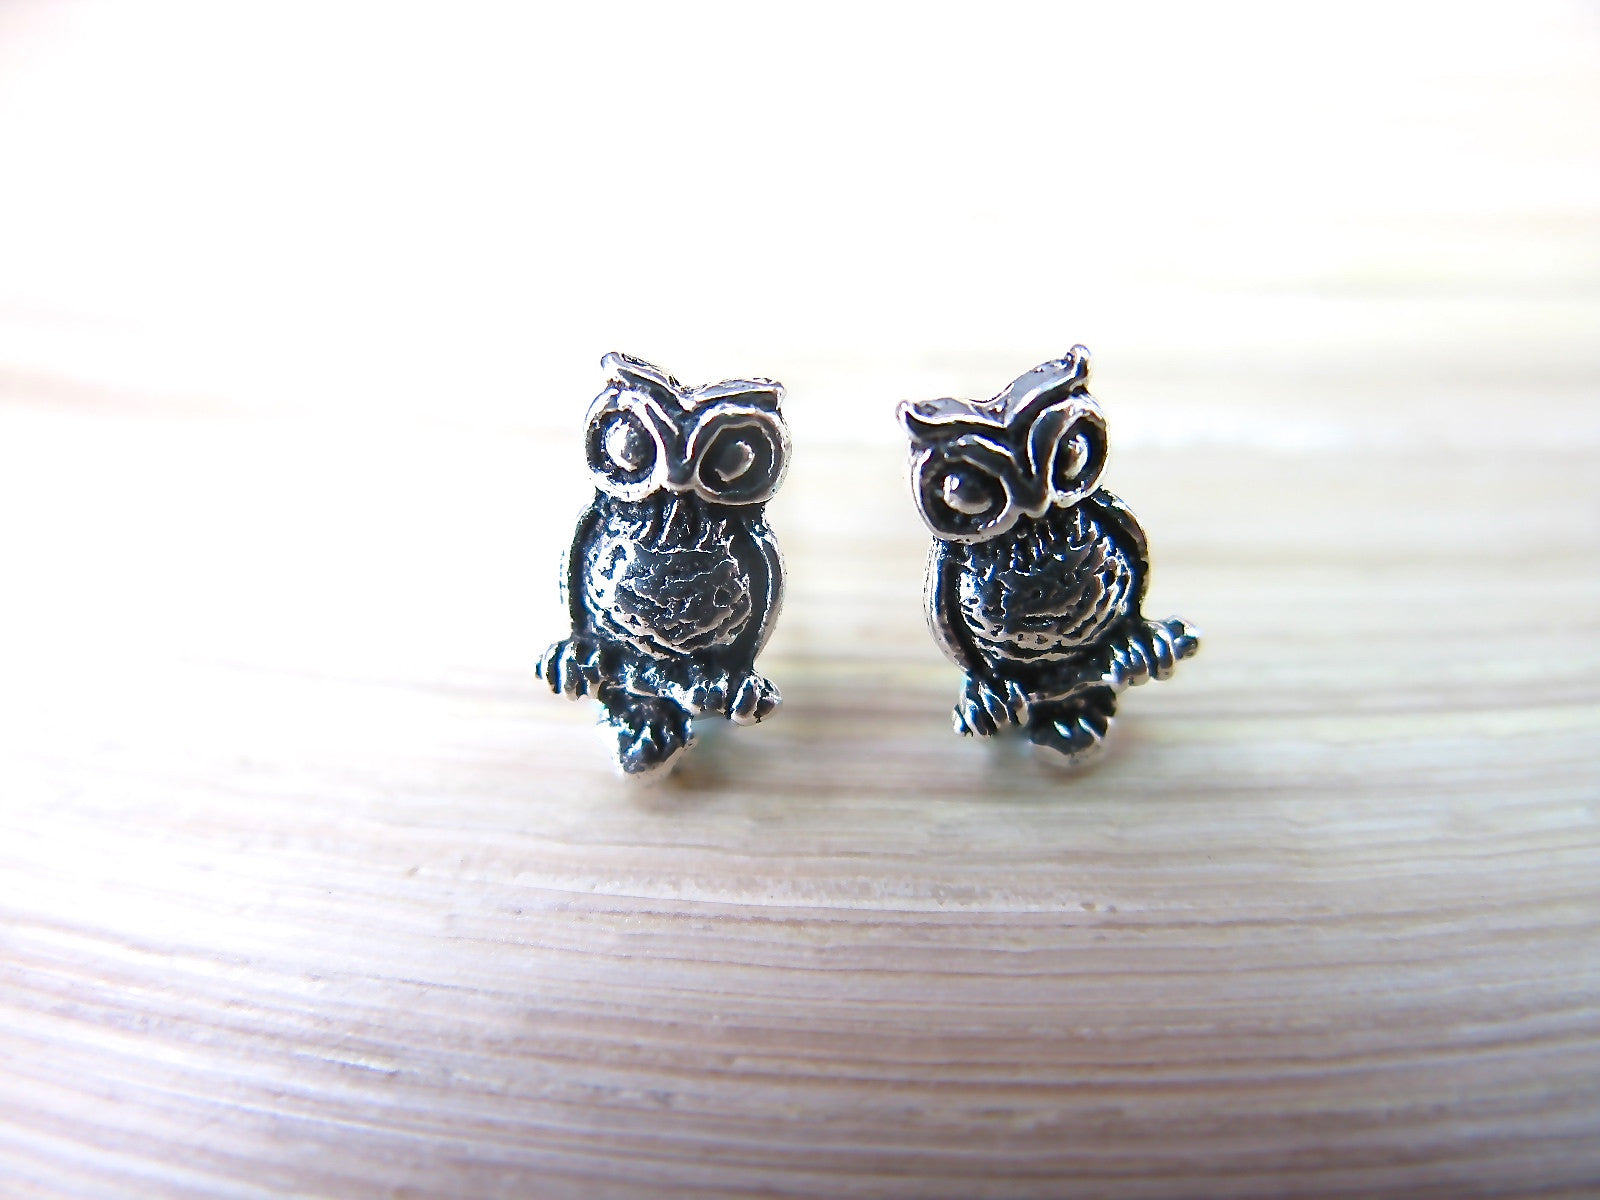 Owl Oxidized 925 Sterling Silver Stud Earrings Stud Faith Owl - Faith Owl